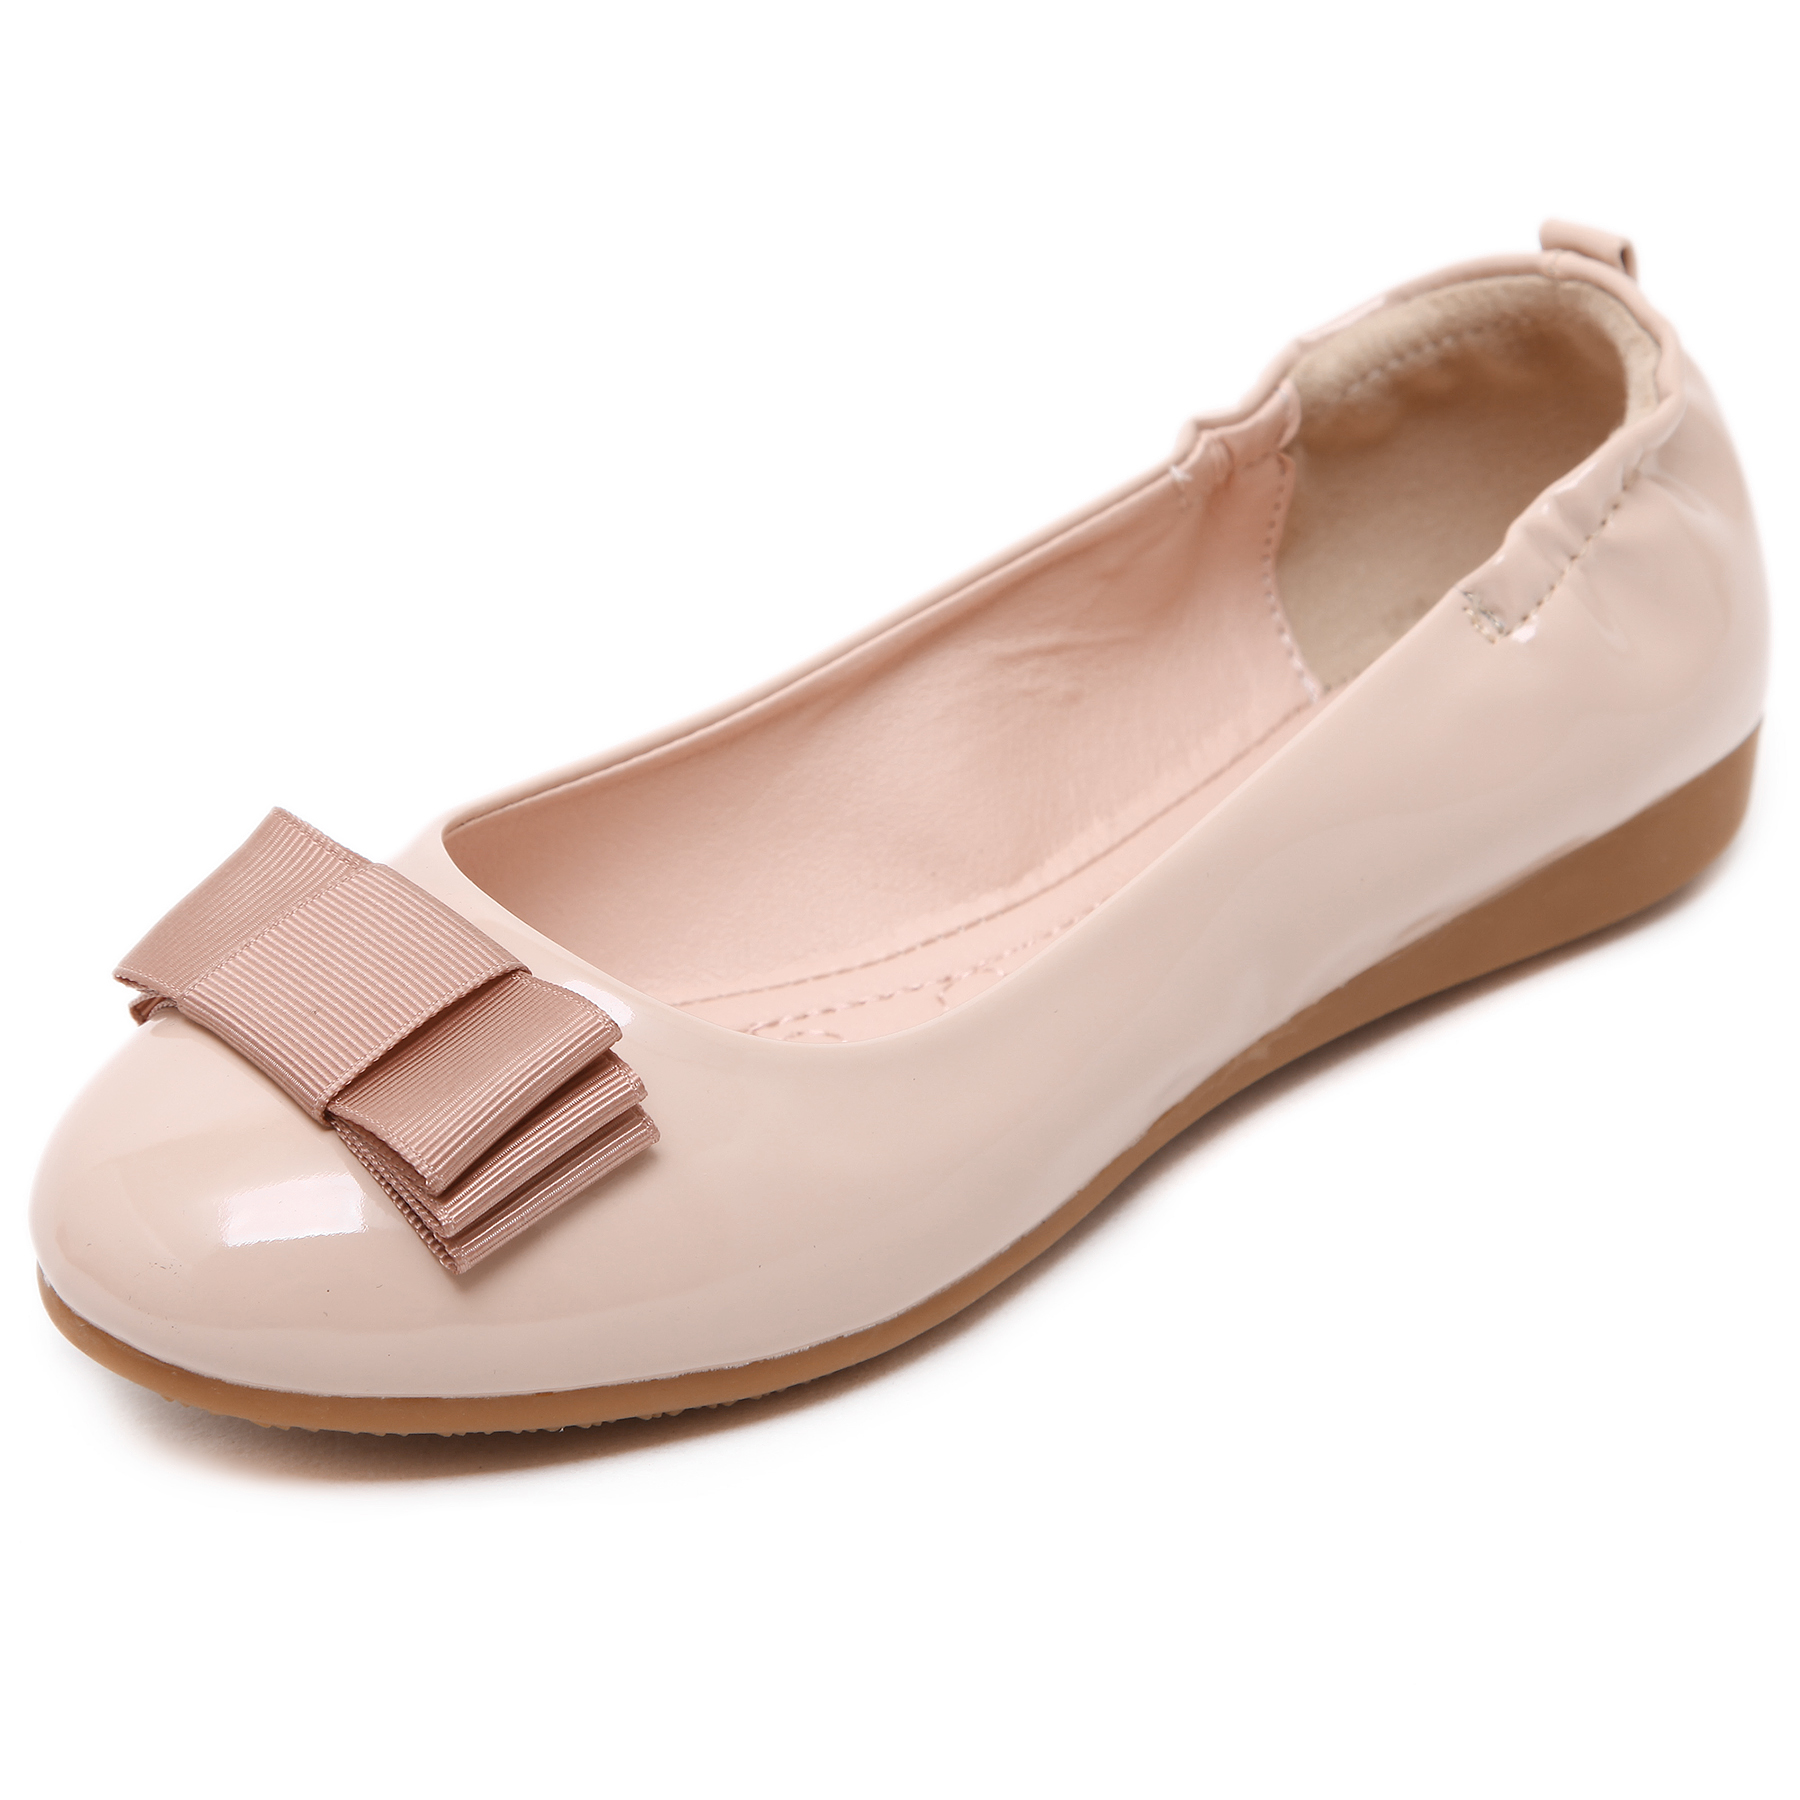 Brand New Fashion Casual Loafers Sweet Candy Colors Women Ballet Flats Solid Summer Style Shoes Woman 3 Colors Plus Size 35-40 new 2017 spring summer women shoes pointed toe high quality brand fashion womens flats ladies plus size 41 sweet flock t179